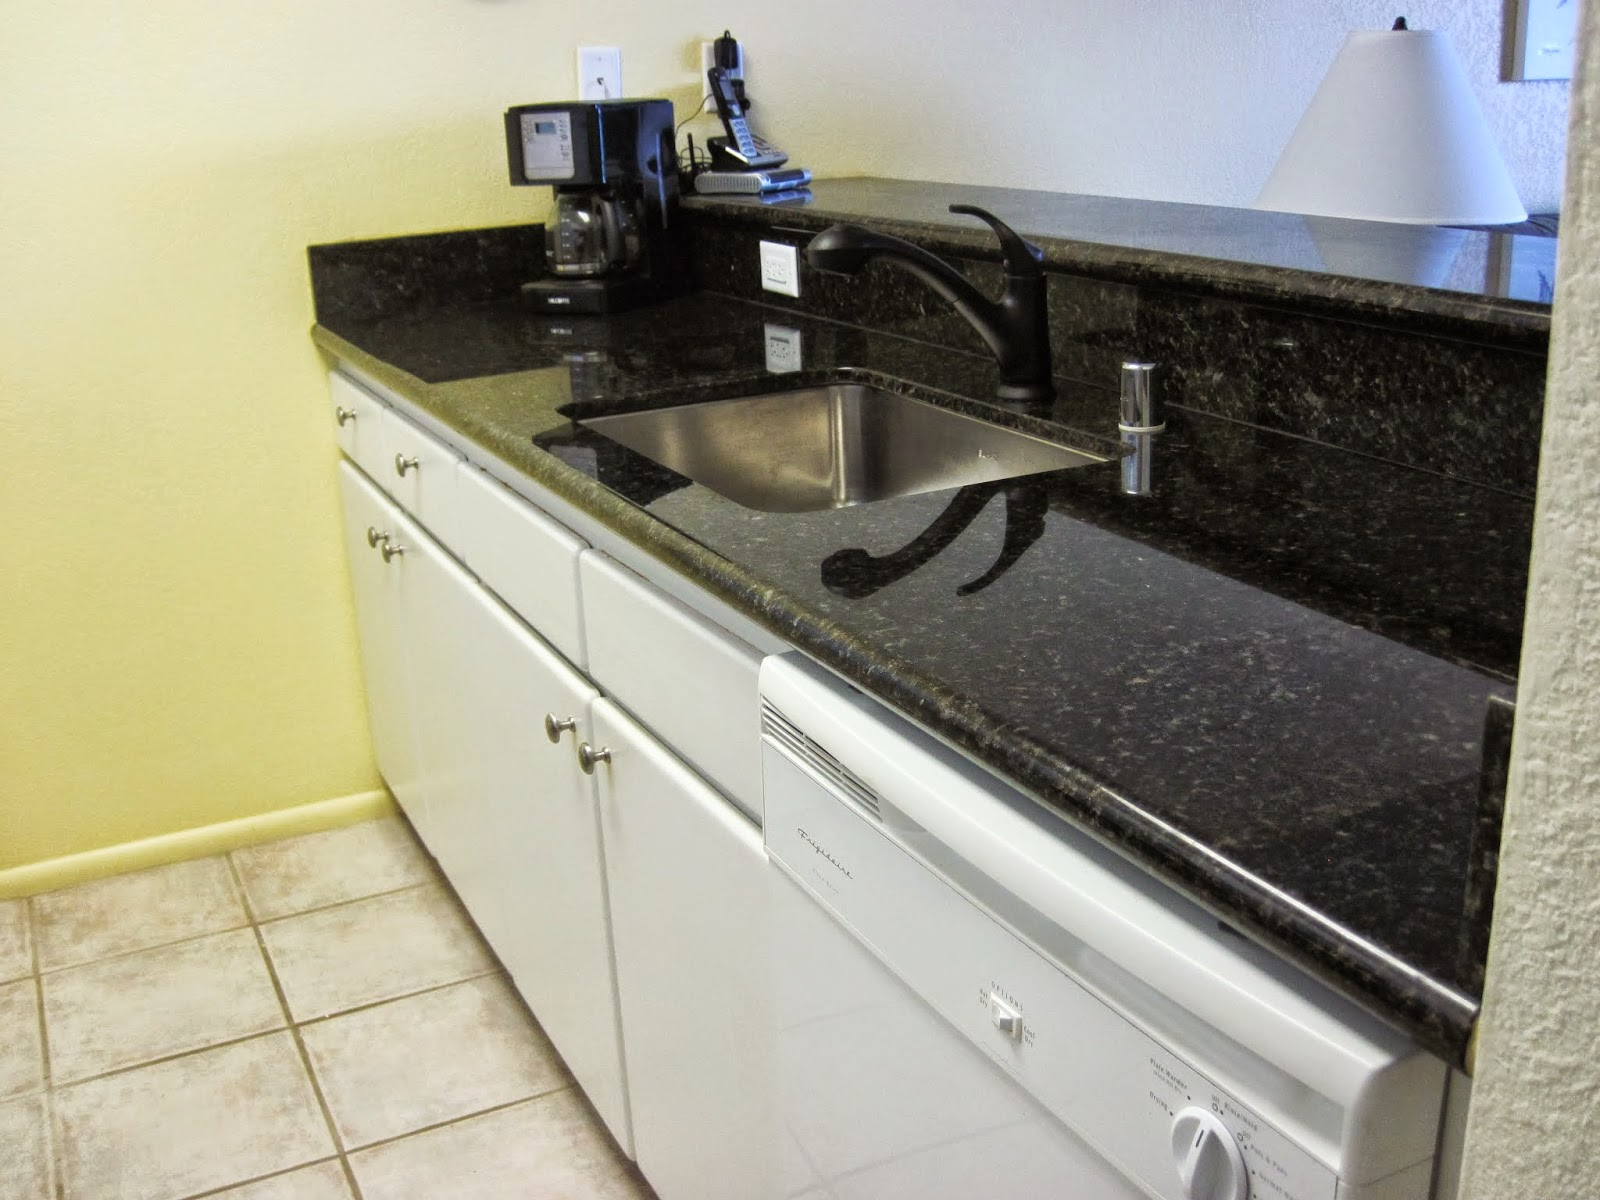 New granite counters and tile flooring.